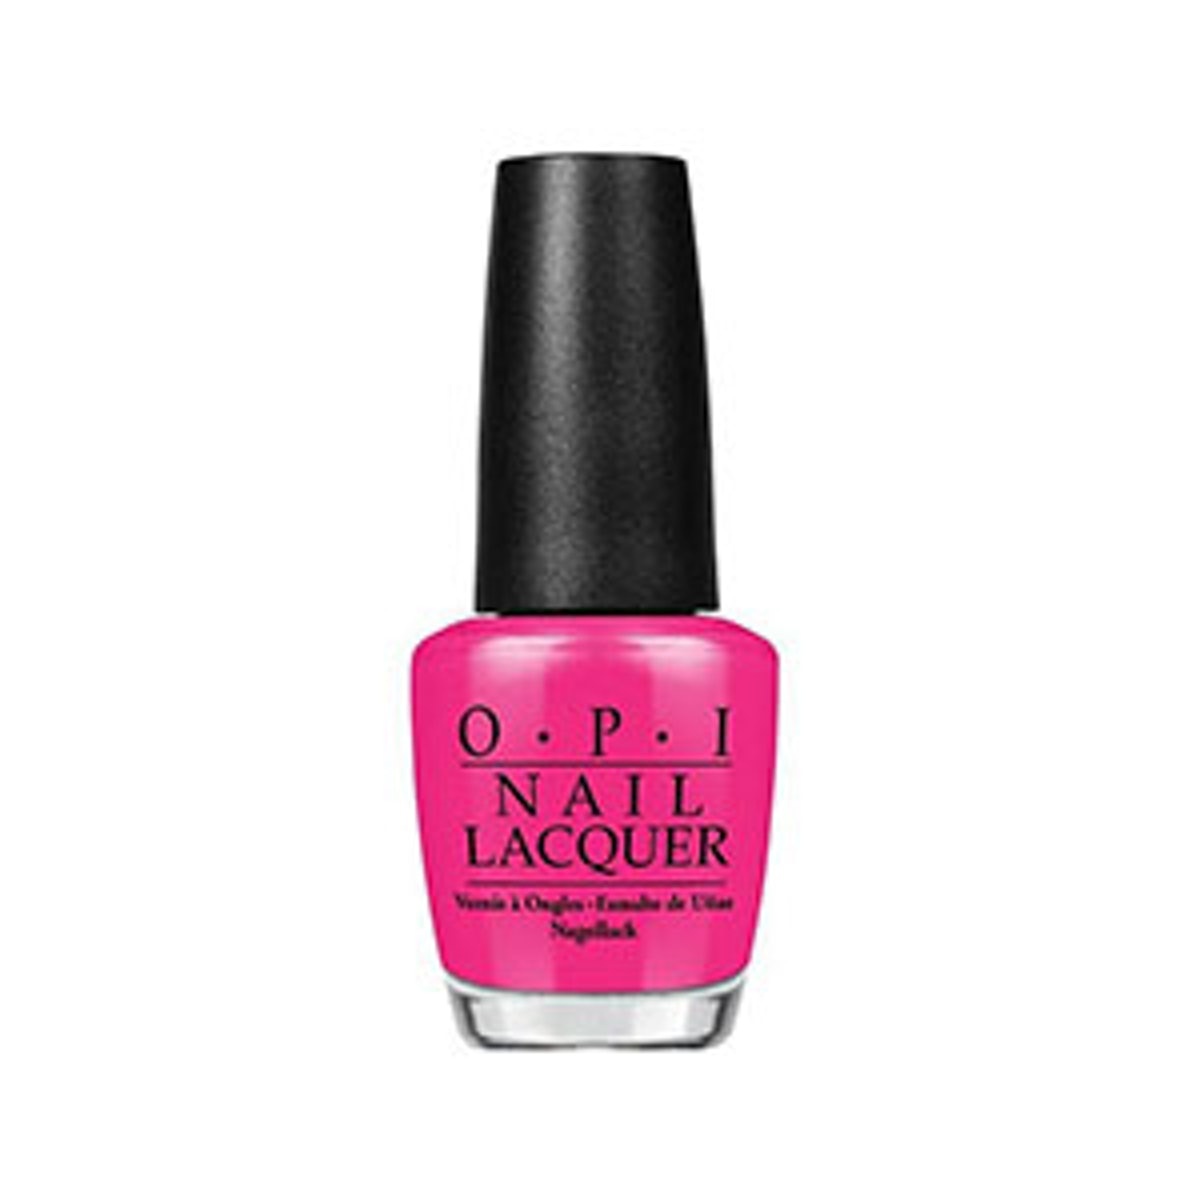 OPI Precisely Pinkish Nail Lacquer